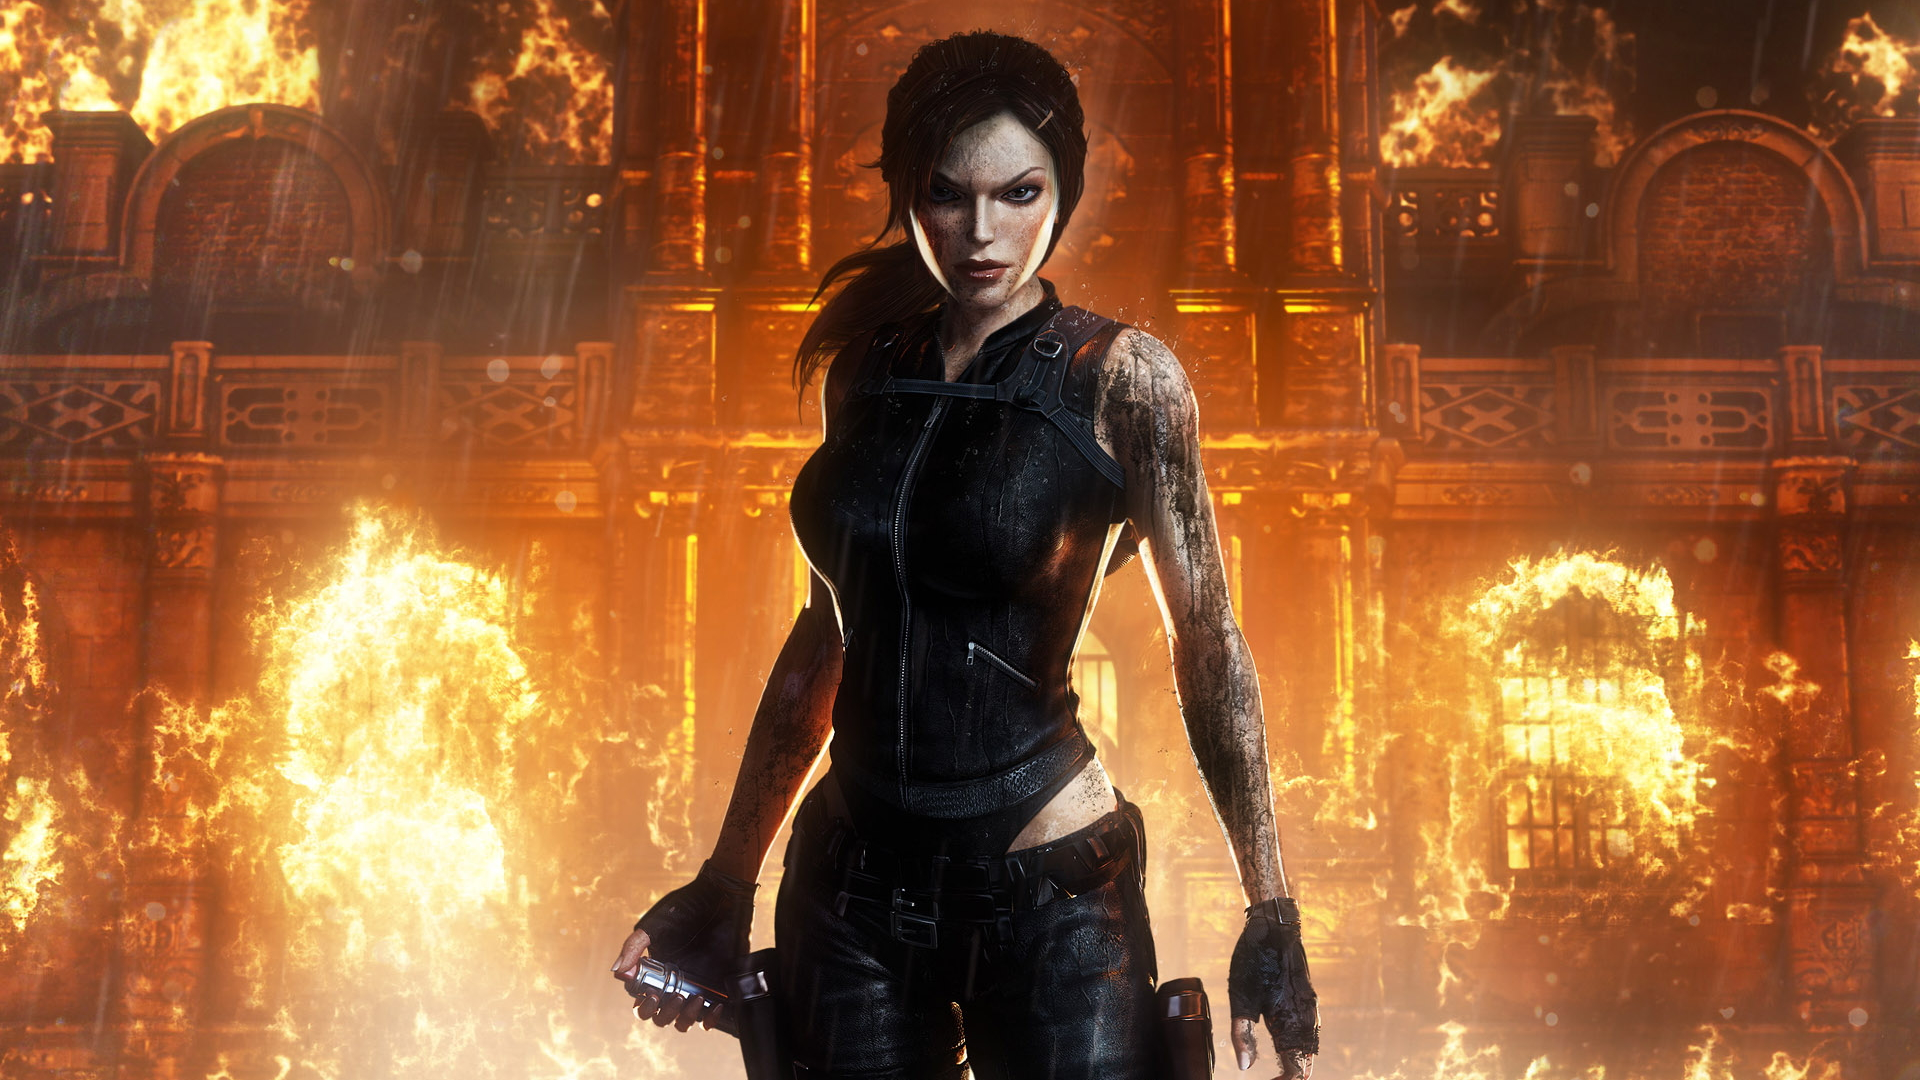 Tomb Raider Underworld 2 Wallpapers